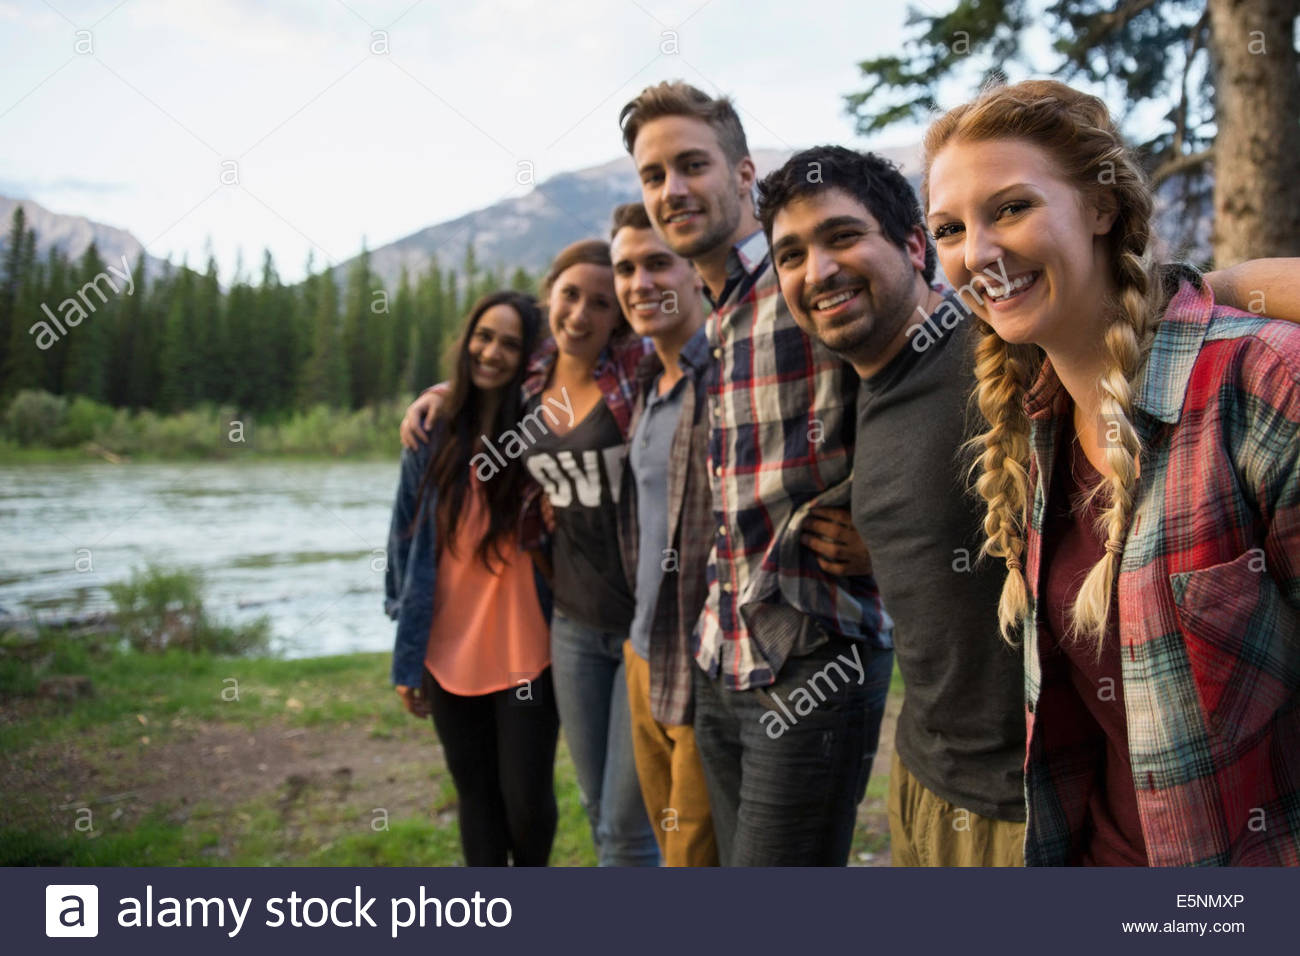 Portrait of friends in a row at lakeside - Stock Image